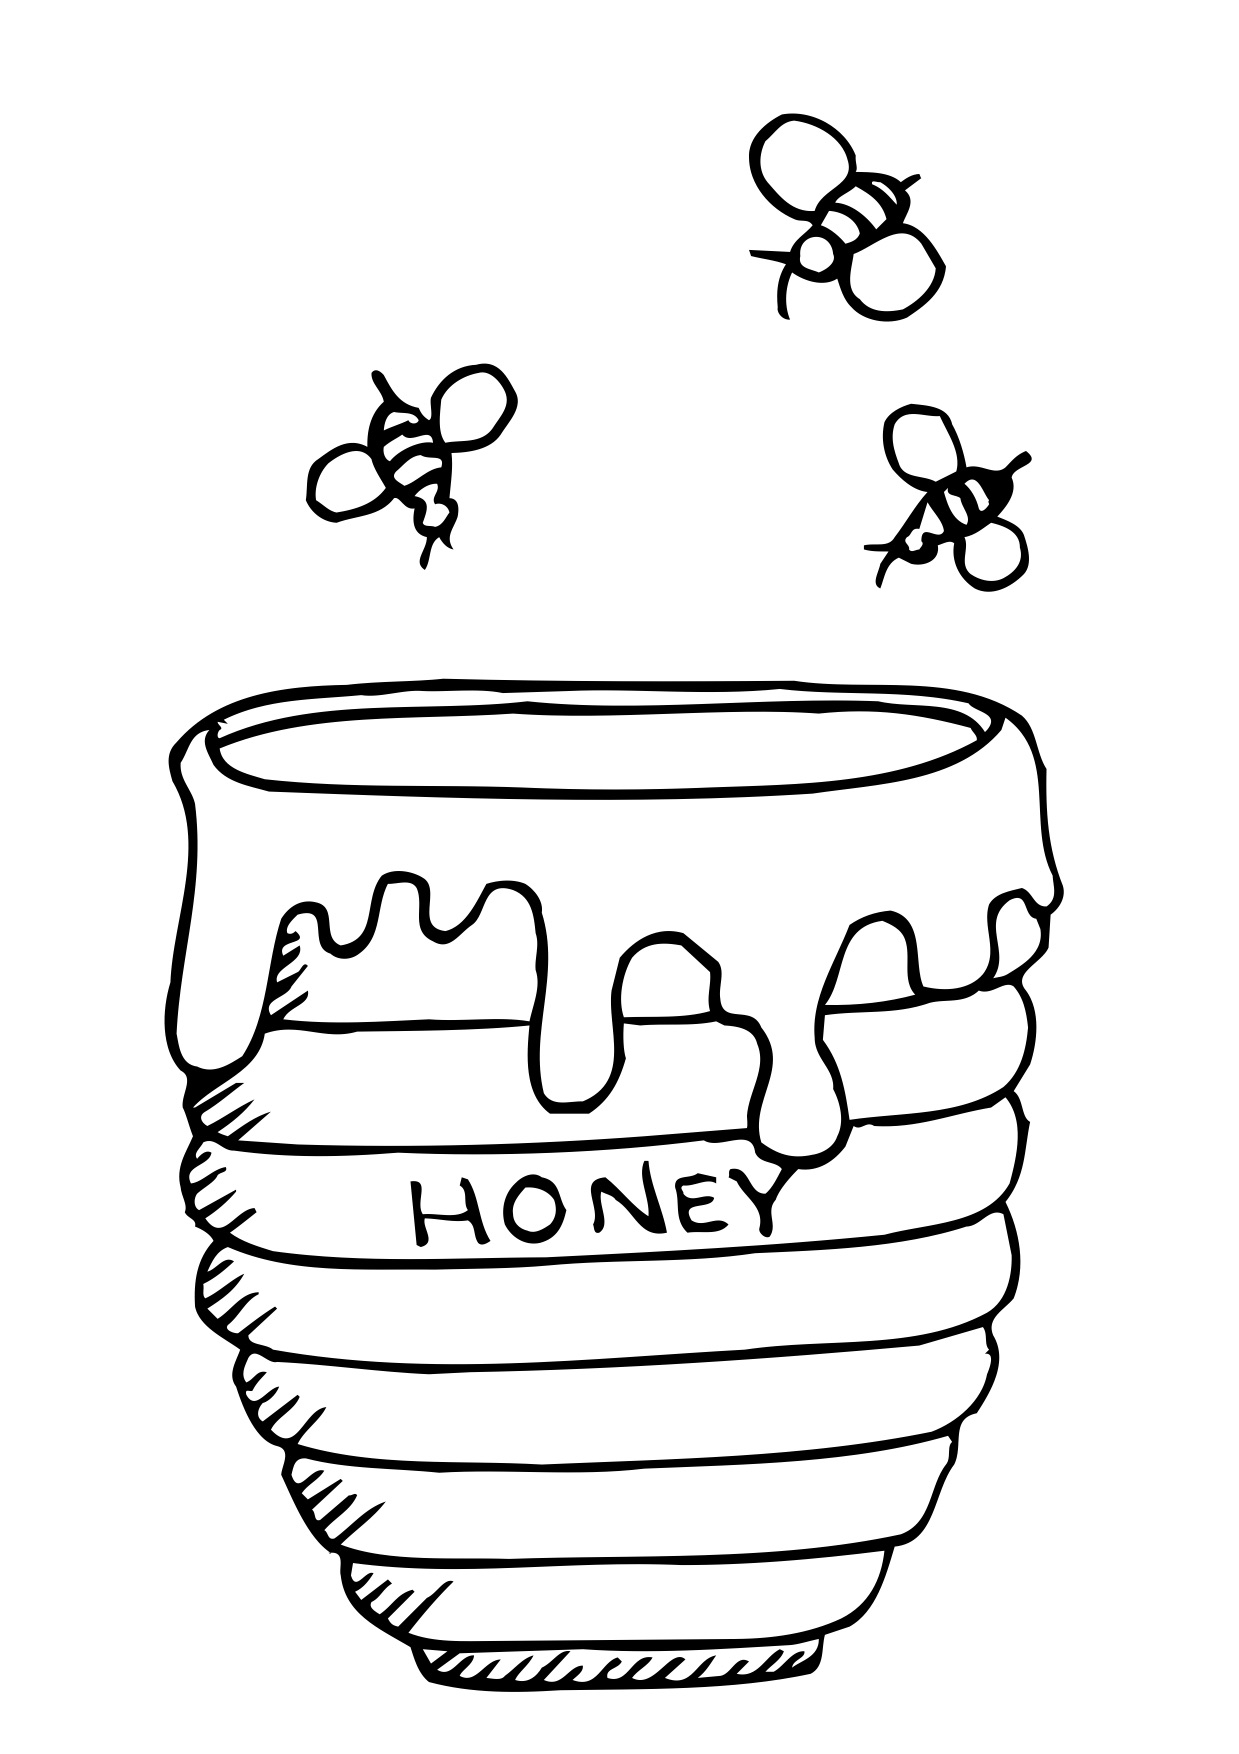 Honey clipart draw. Pot drawing at paintingvalley